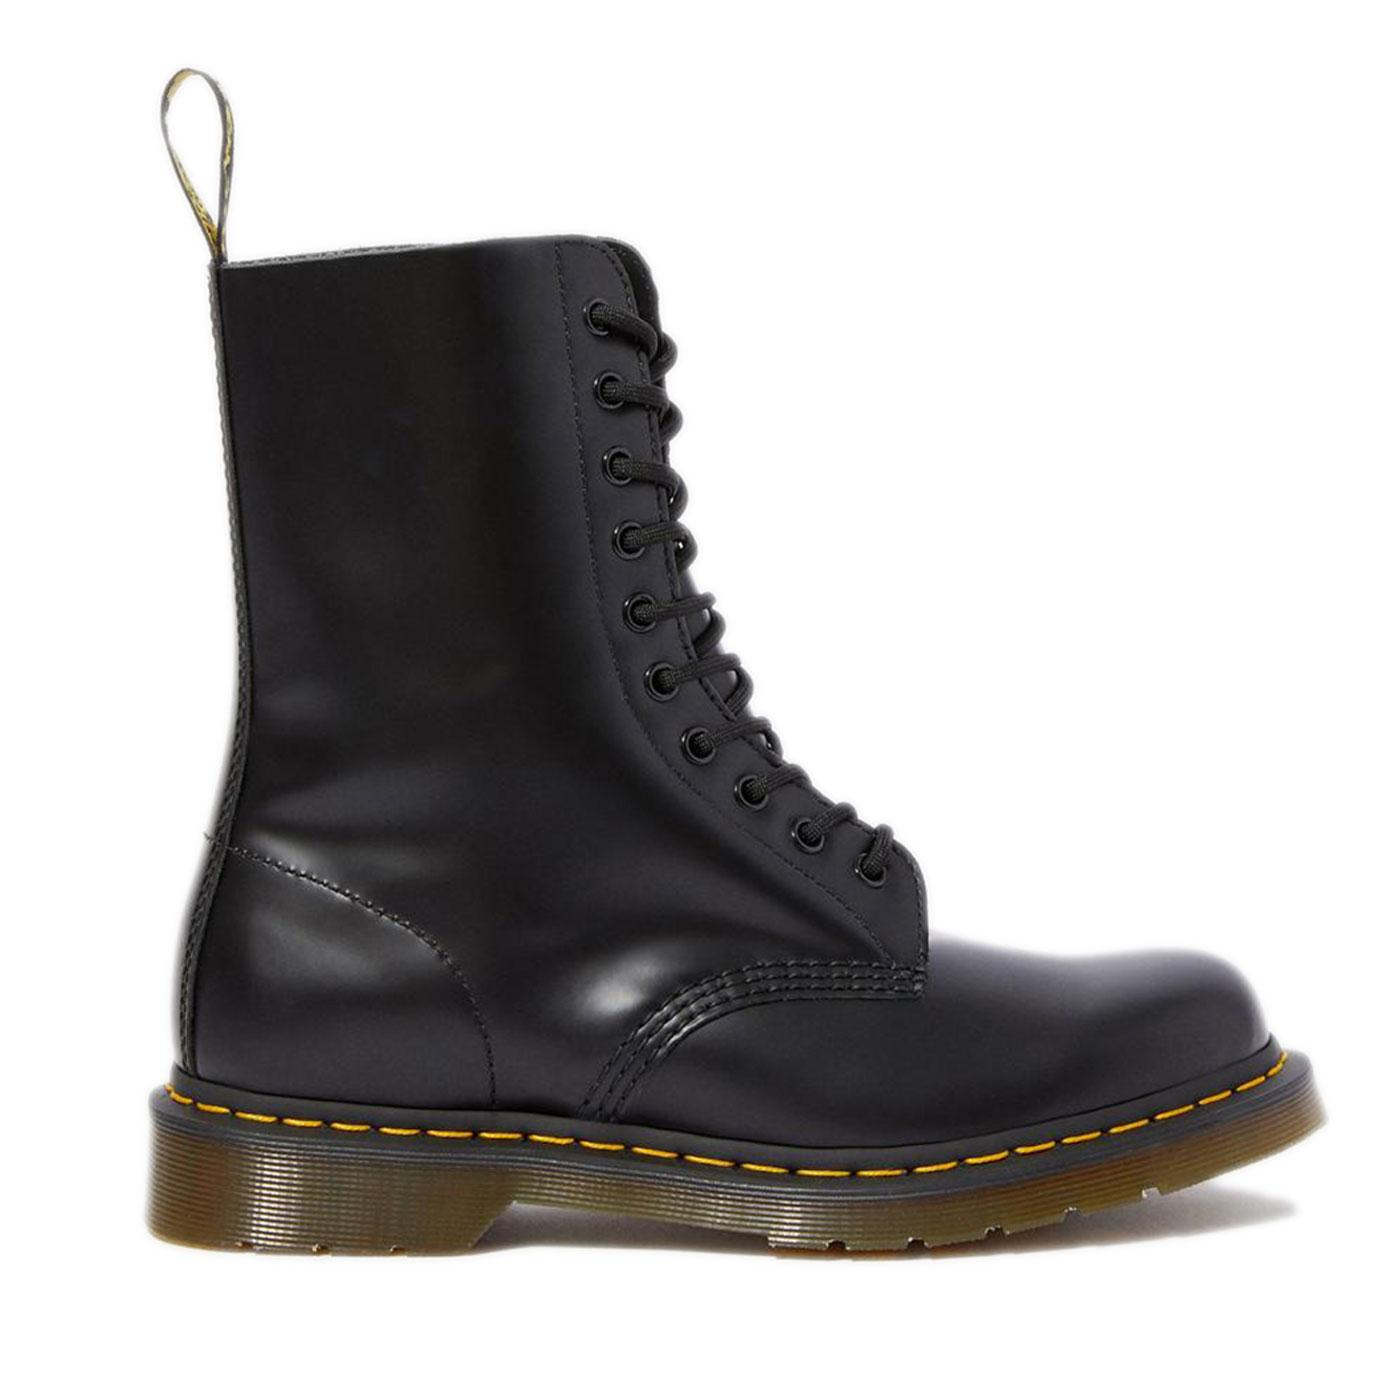 1490 Smooth DR MARTENS Women's 10 Eyelet Boots